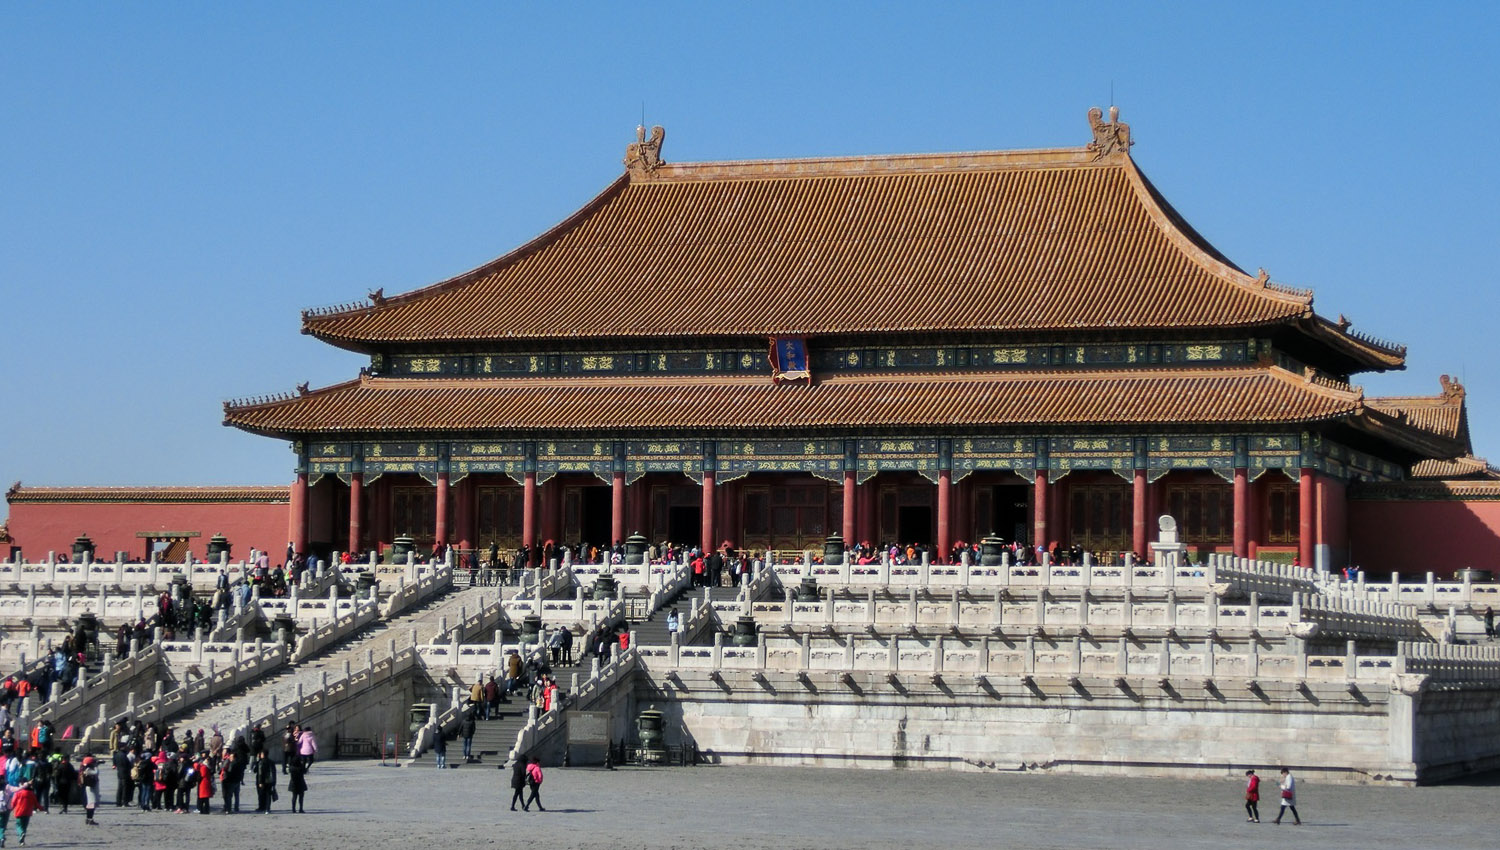 One of the palaces in the Forbidden City, Beijing. Image:     Jens Junge